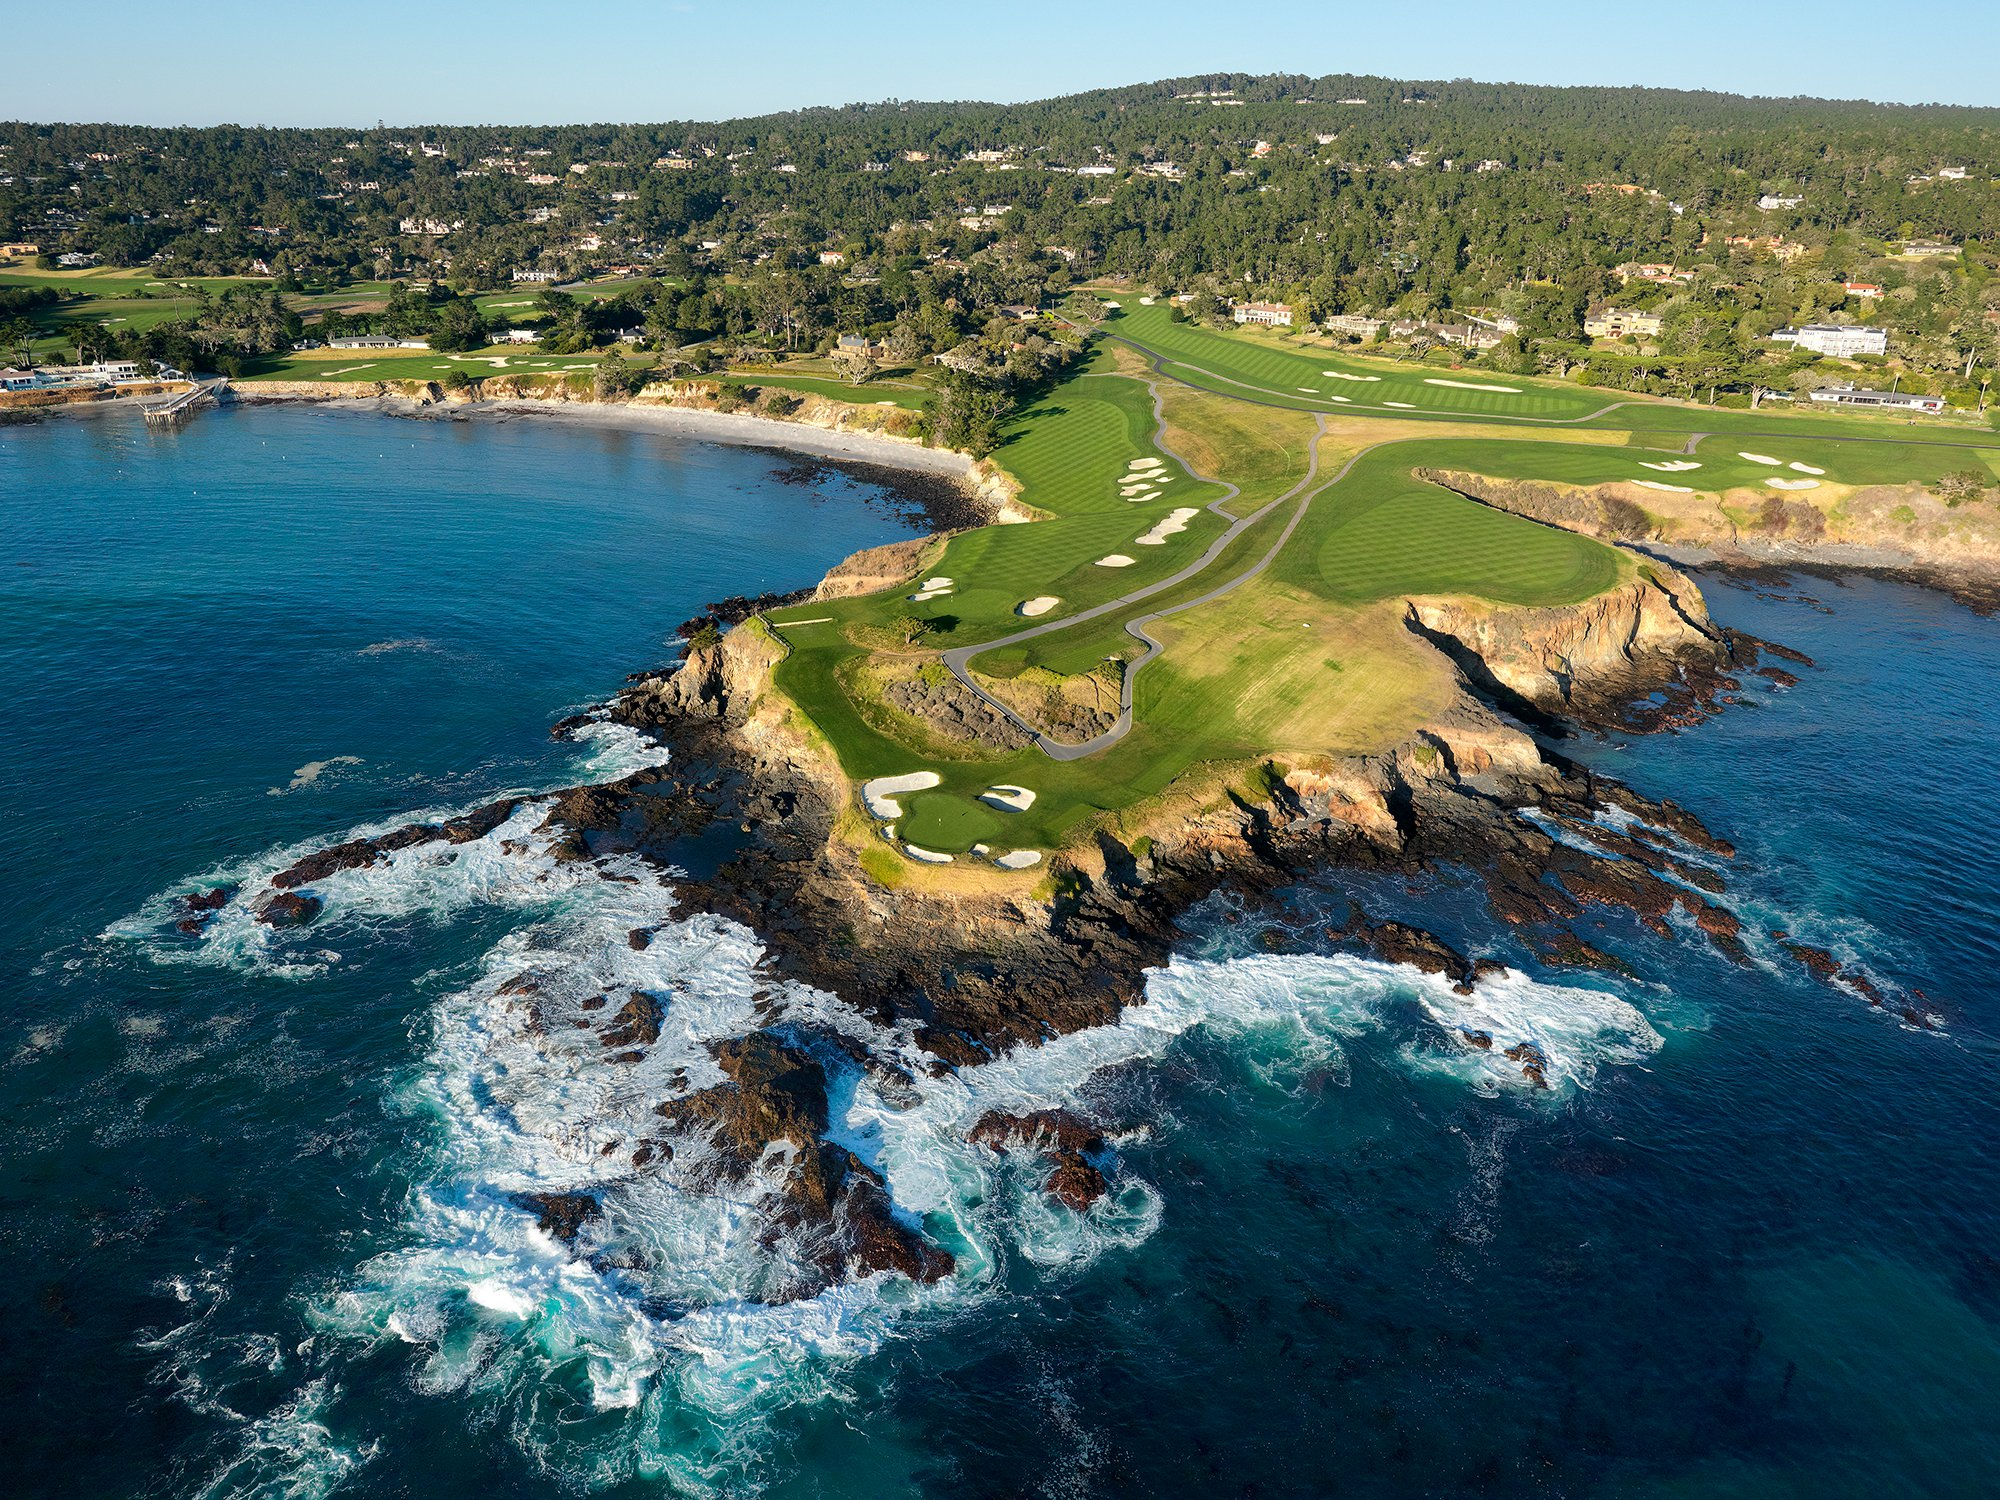 Every Major Golf Publication Agrees That Pebble Beach Is The No 1 Public Course In Country These Rankings Factor Categories Such As